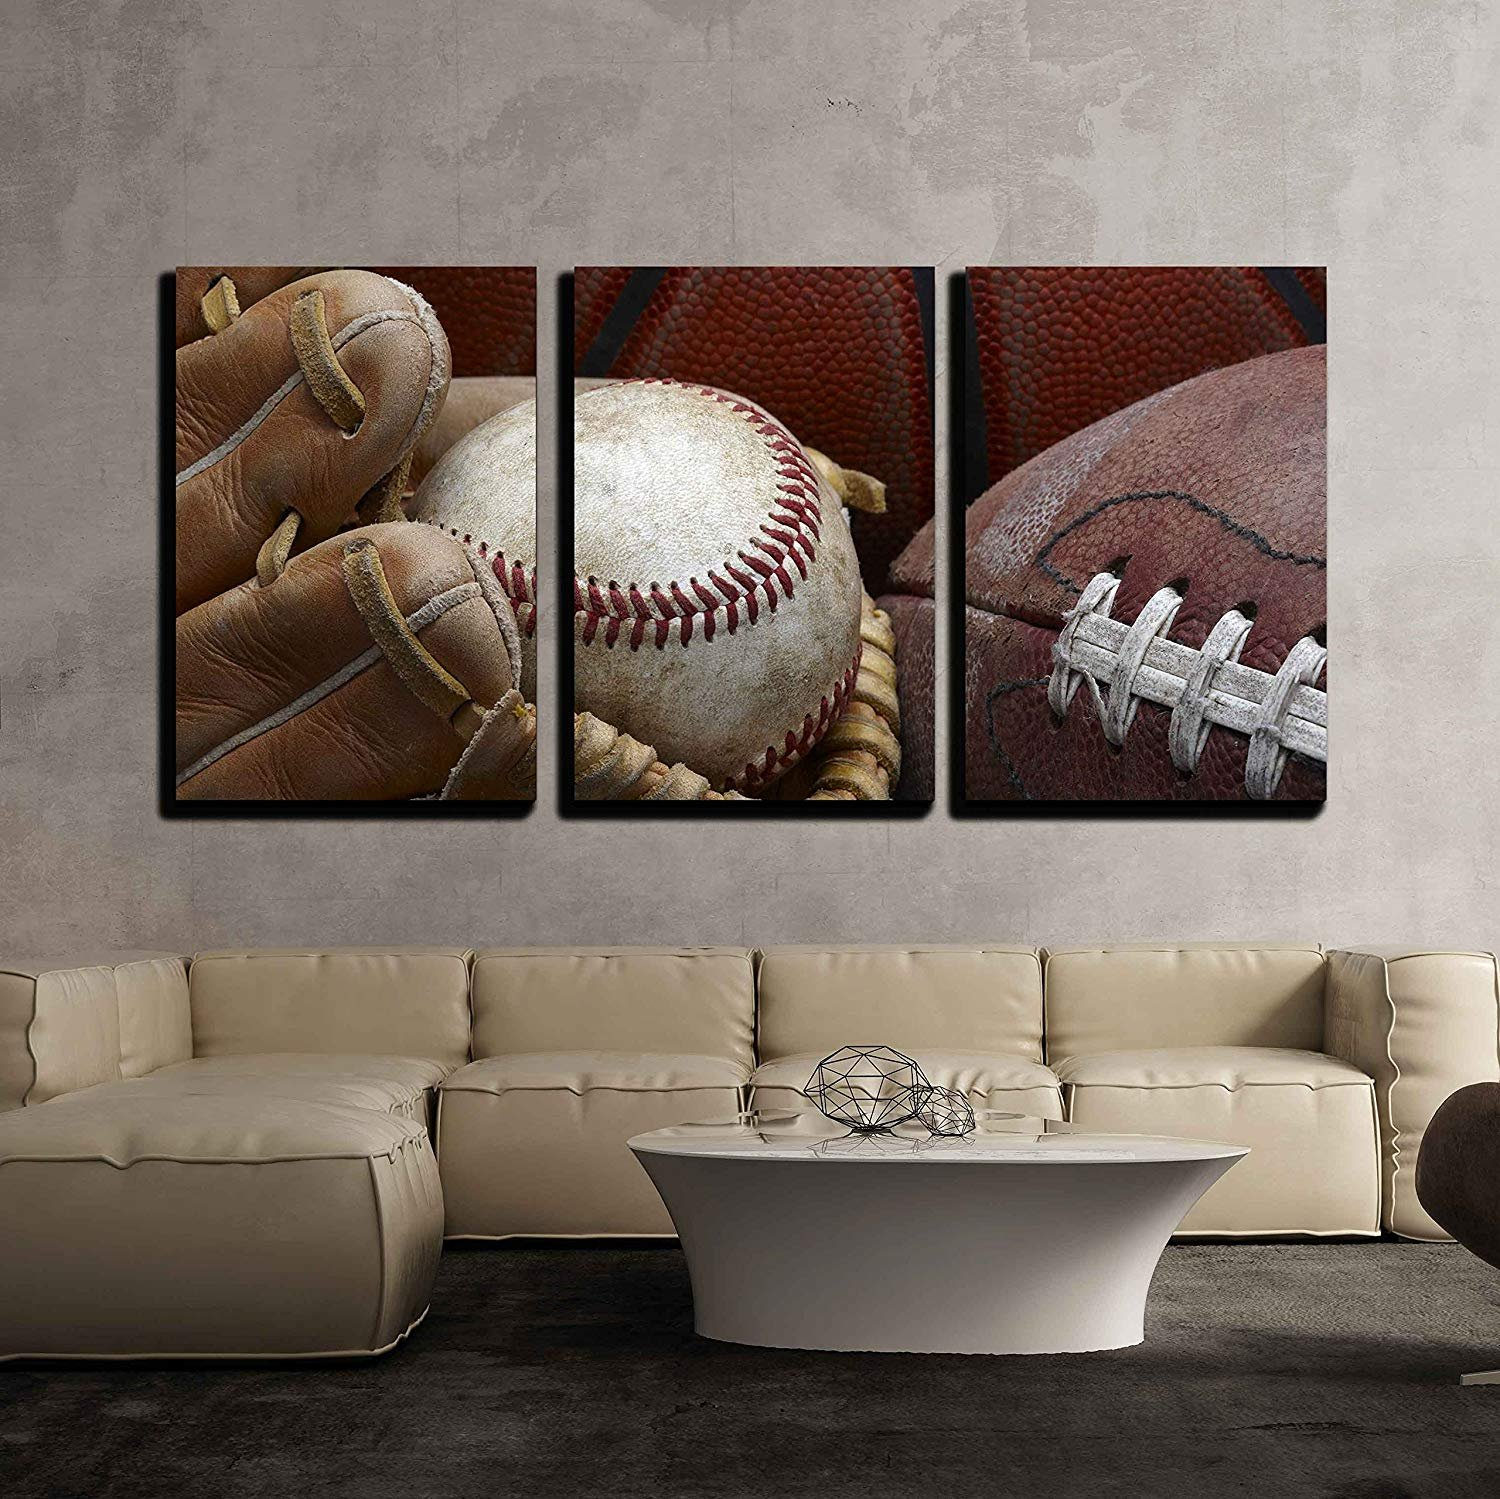 wall26 – 3 Piece Canvas Wall Art – Close Up Shot of Well Worn Baseball in Baseball Glove, Football and Basketball – Modern Home Decor Stretched and Framed Ready to Hang – 16 x24 x3 Panels